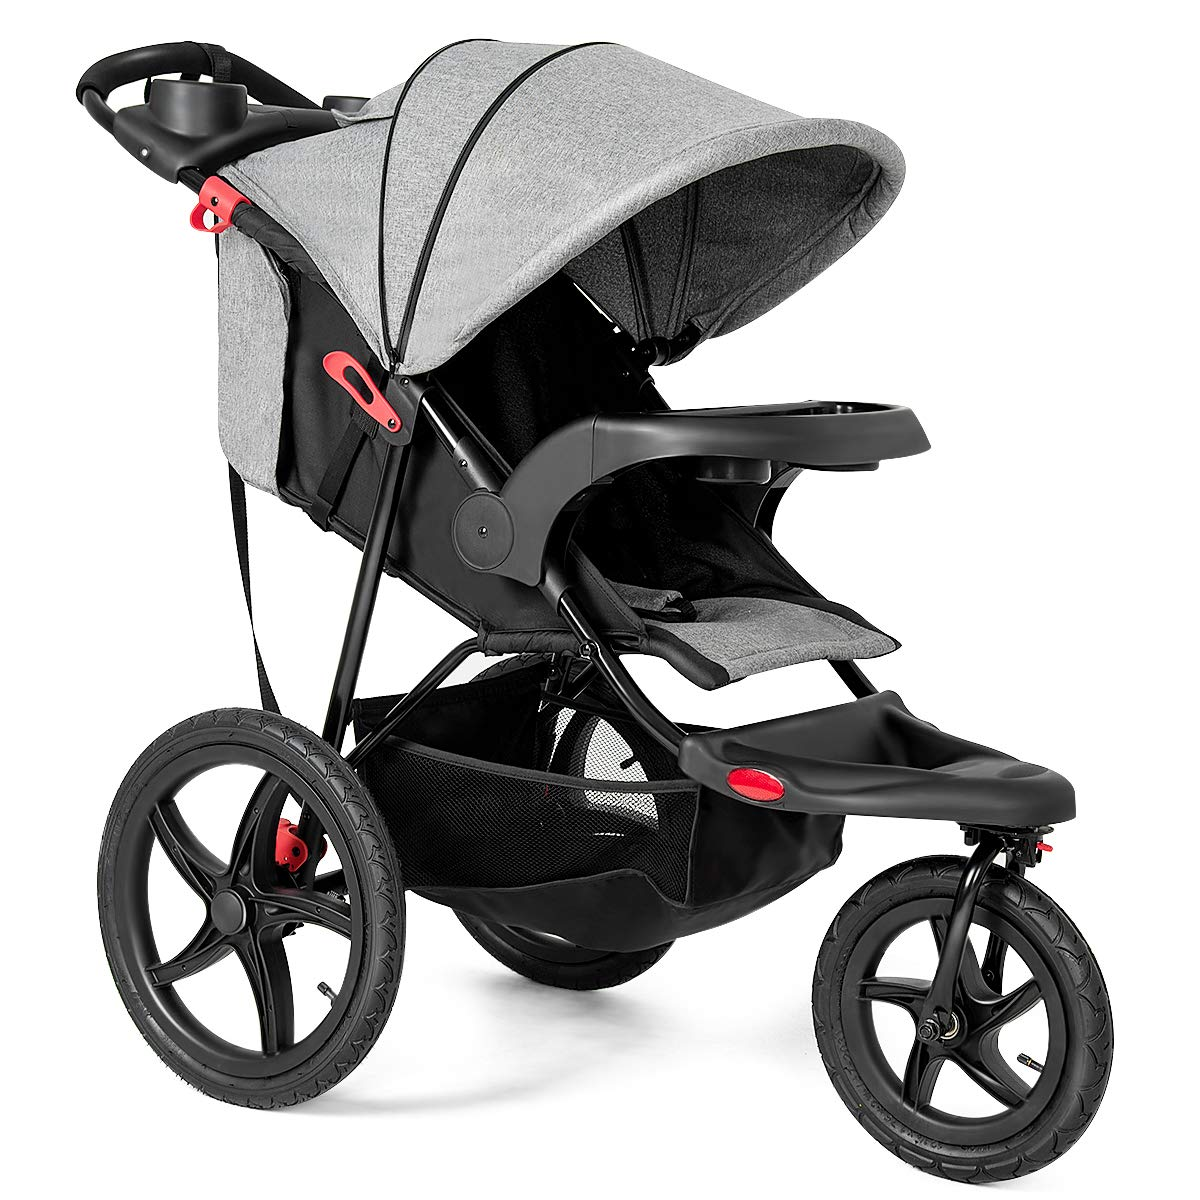 Costzon Baby Jogger Stroller Lightweight w/Cup Phone Holder (Gray)